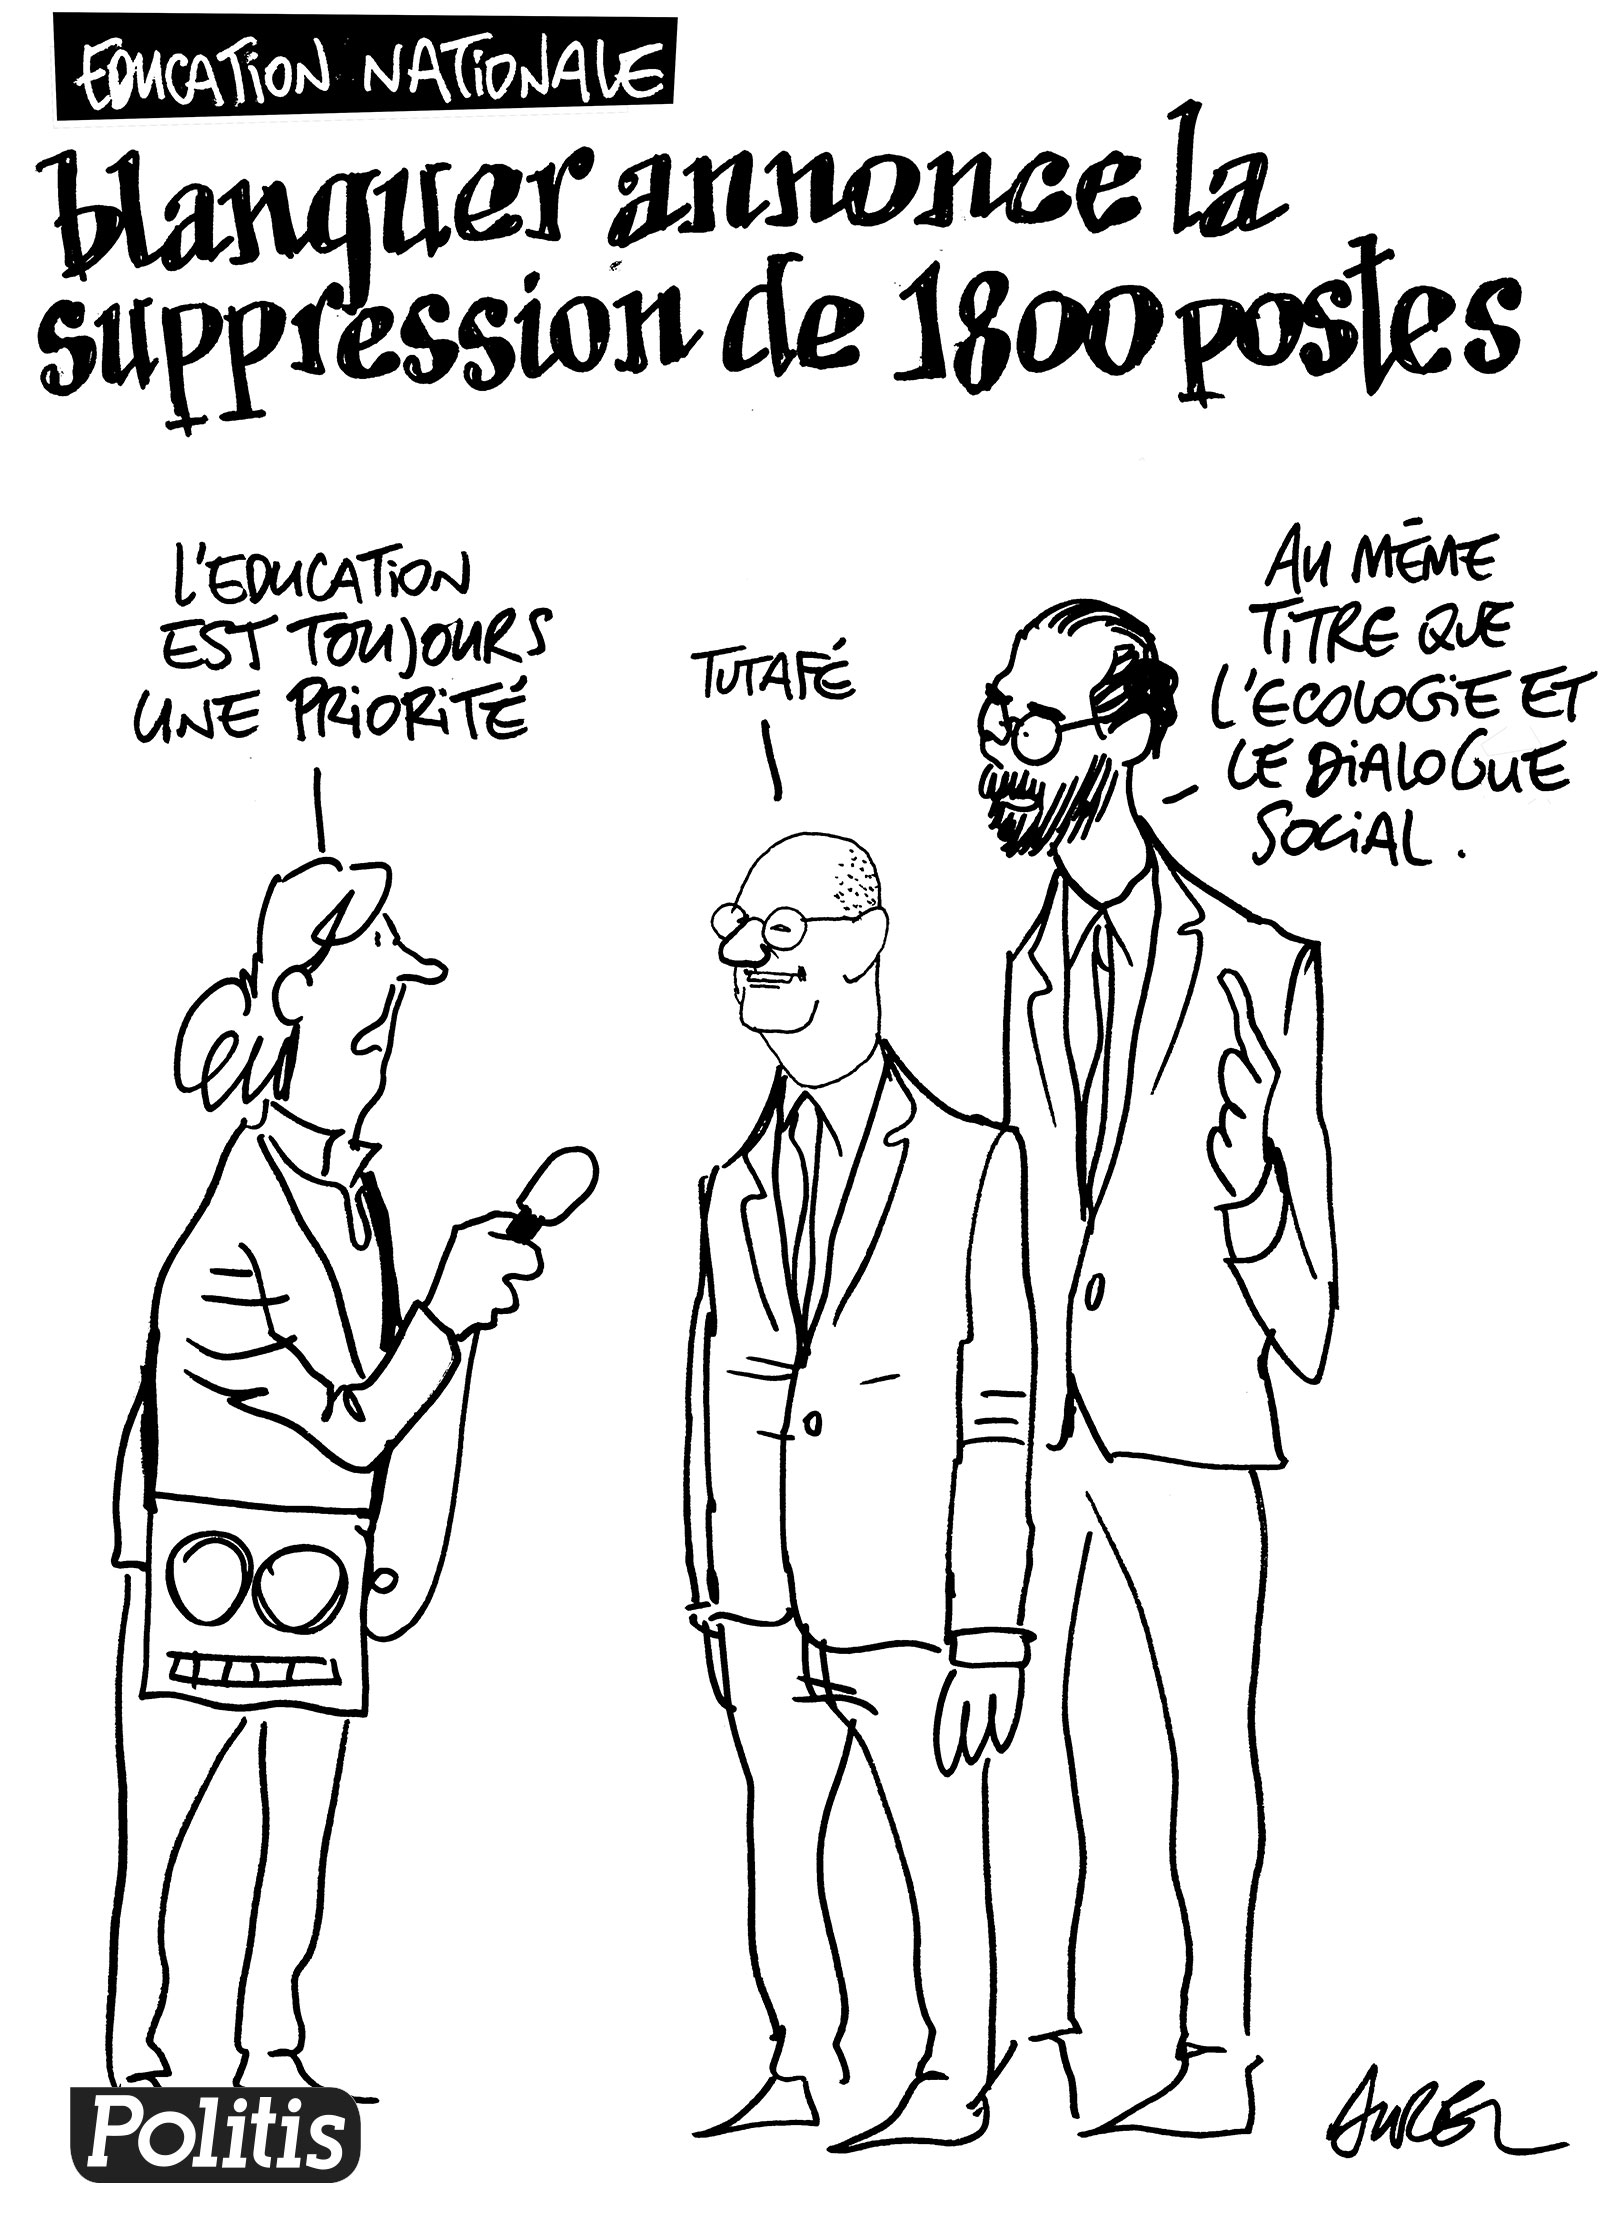 aurel-en-suppression-postes.jpg